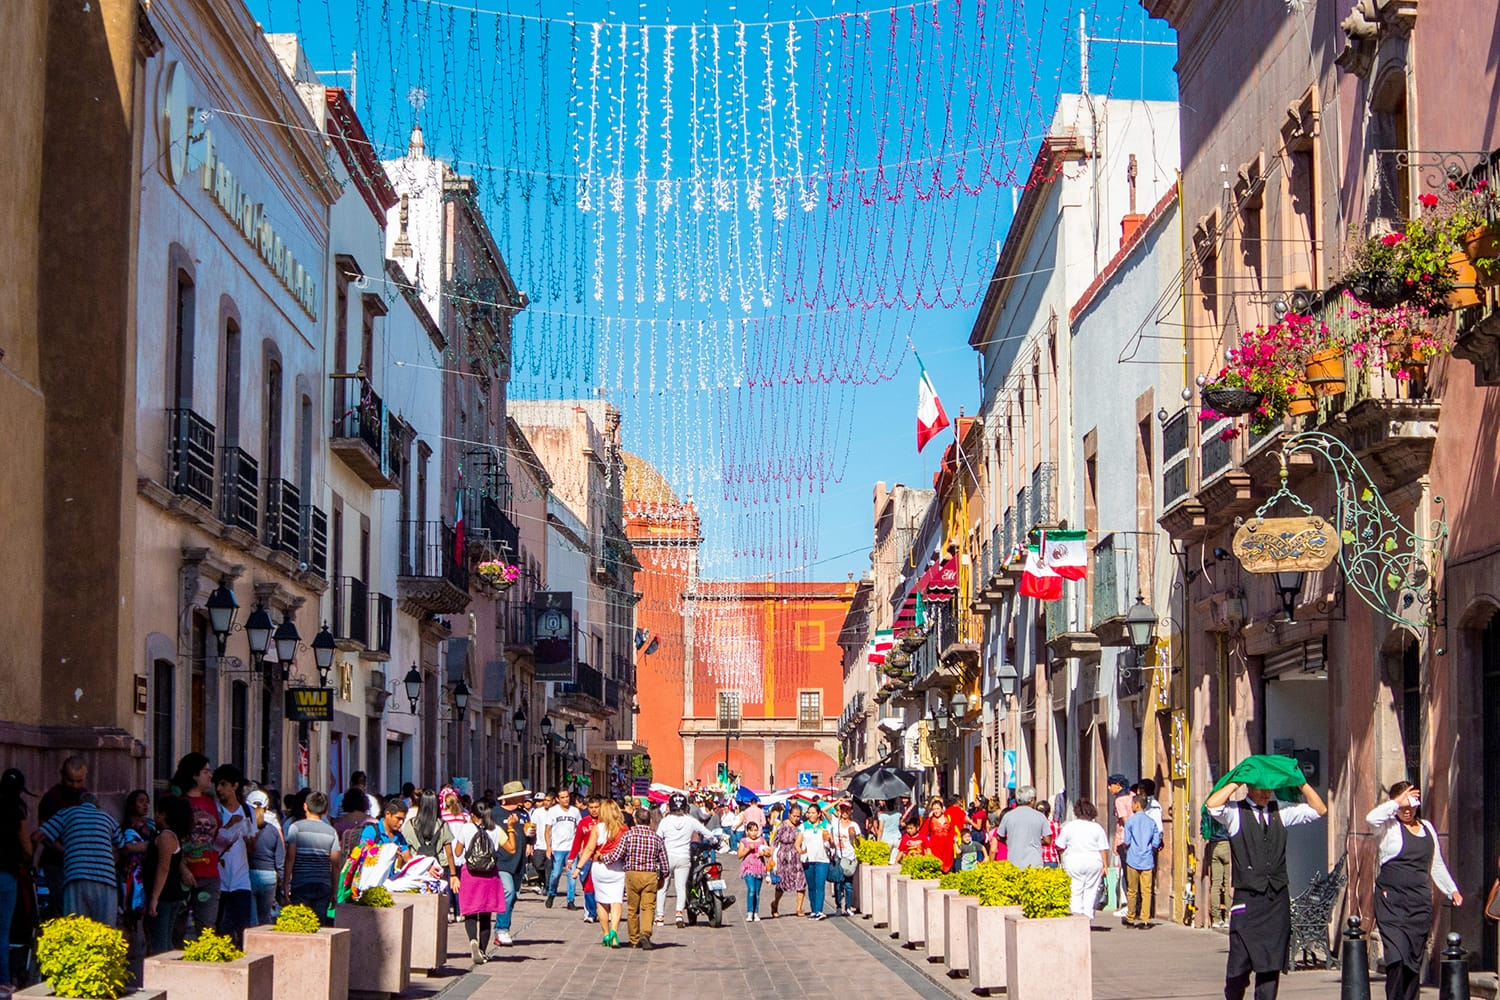 A crowd in Calle Francisco I Madero enjoying the celebration of Independence Day in Queretaro, Mexico.